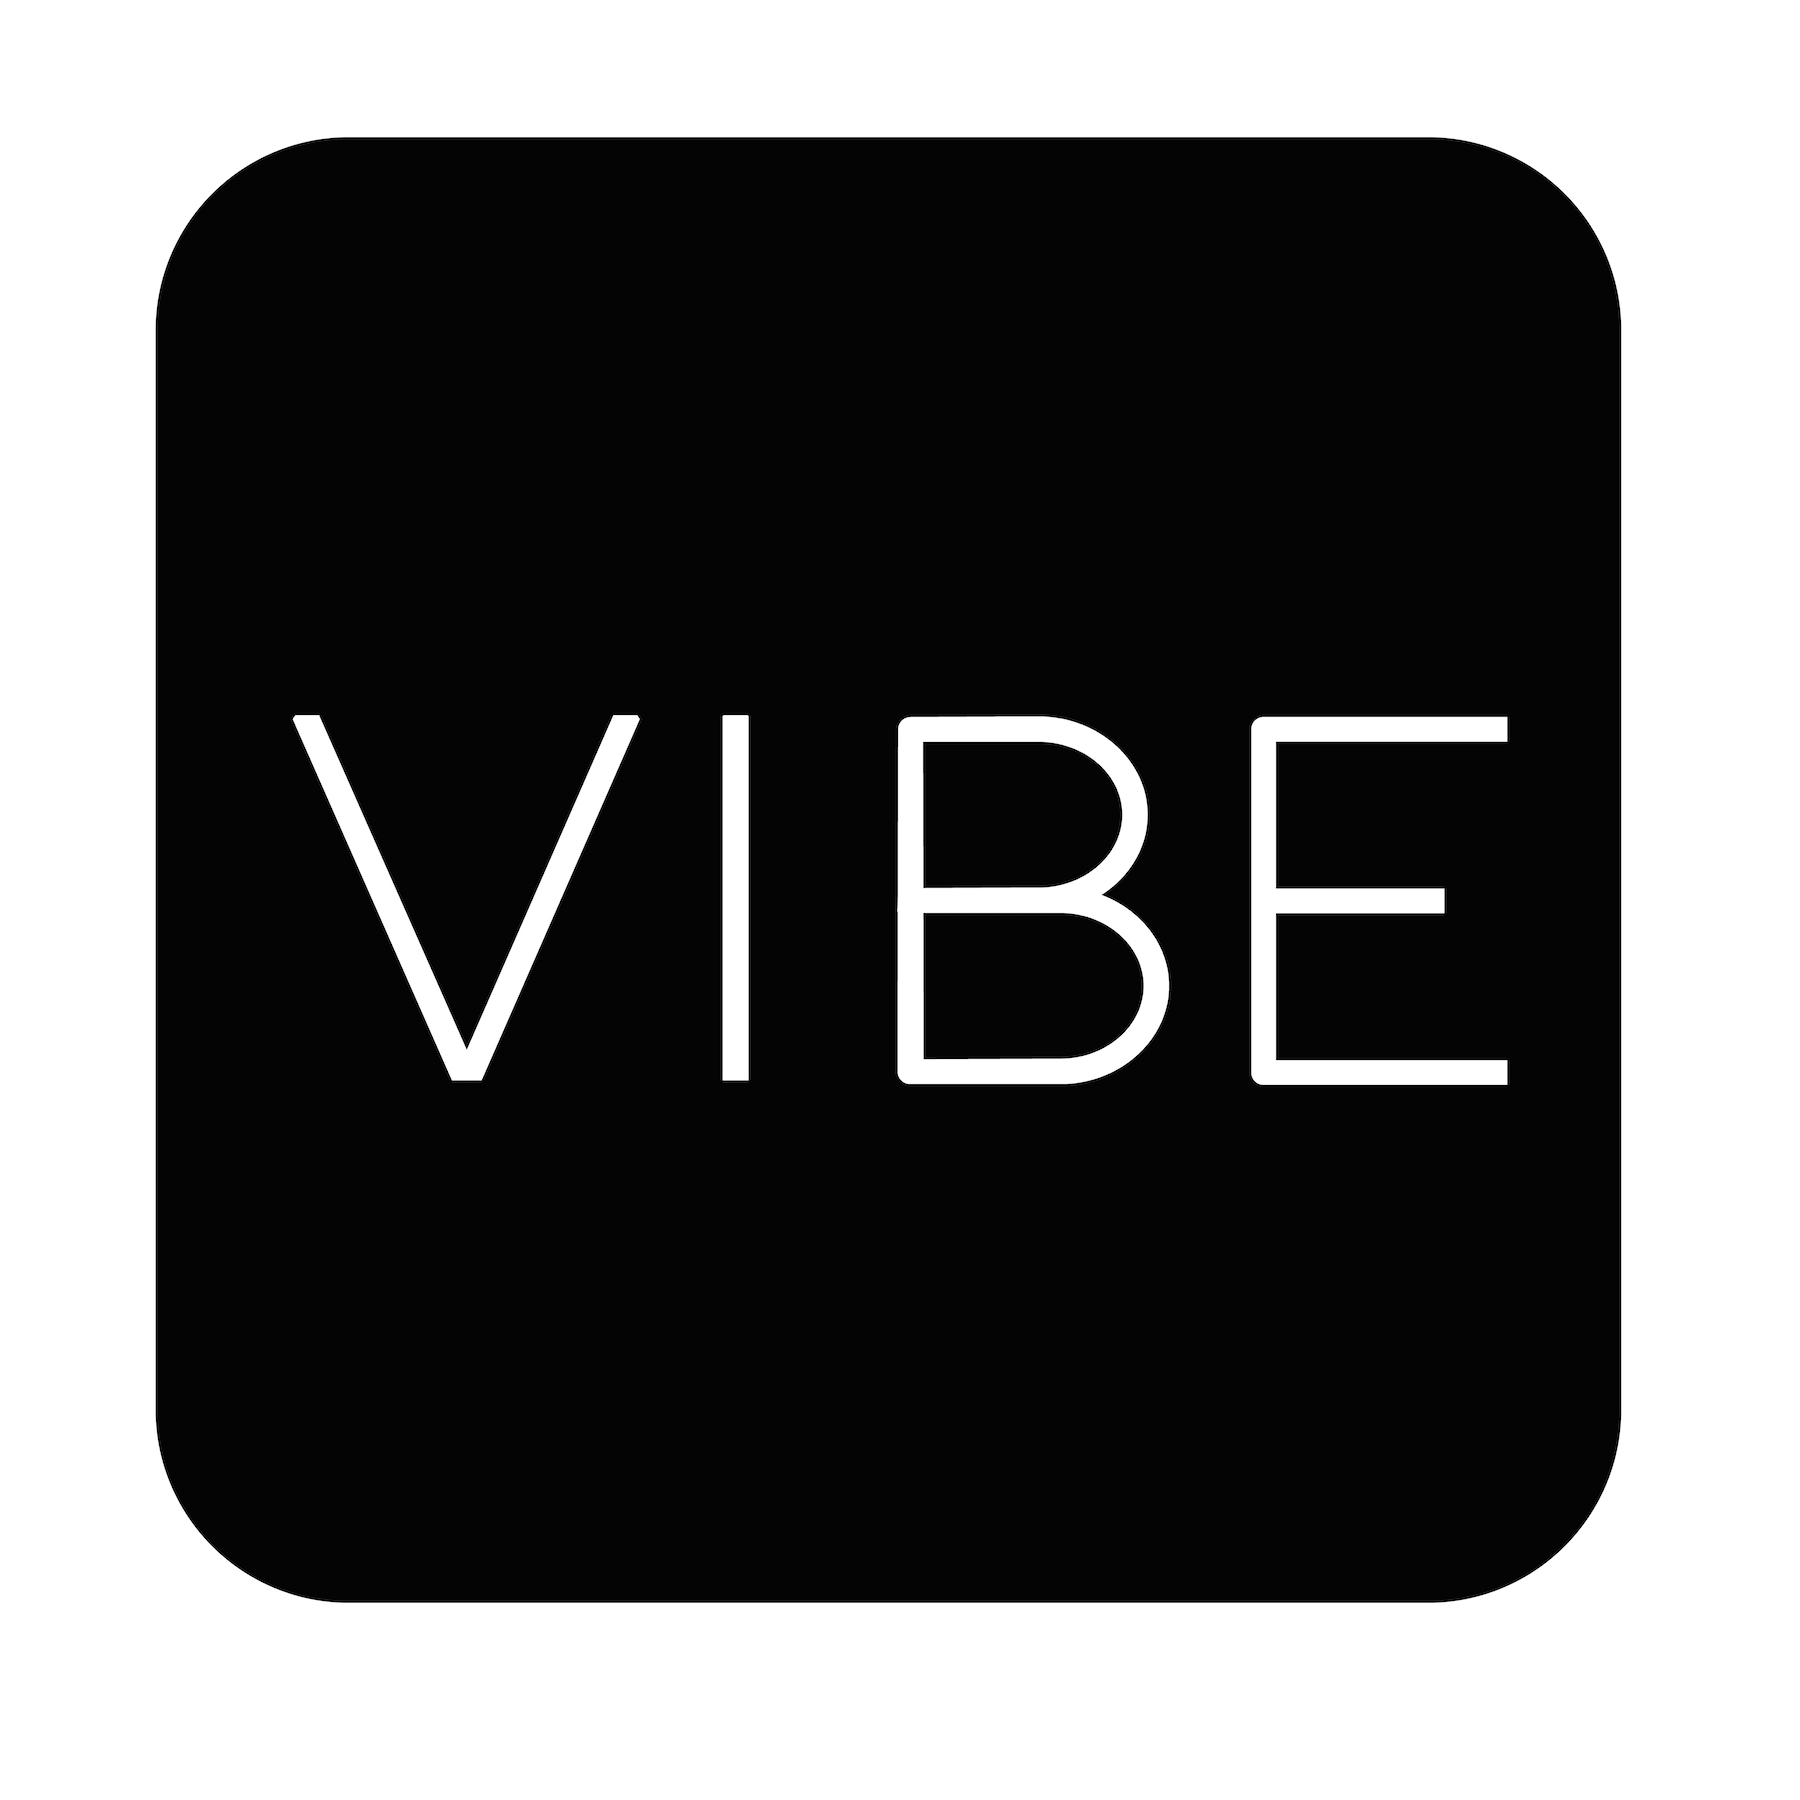 Book an appointment! - Download the VIBEsalon App today to plan and schedule your appointments. Within this app you can view stylist schedules, book appointments, see ongoing promotions, as well as our location and contact information. Optimize your time and maximize the convenience of booking your appointments from your device!